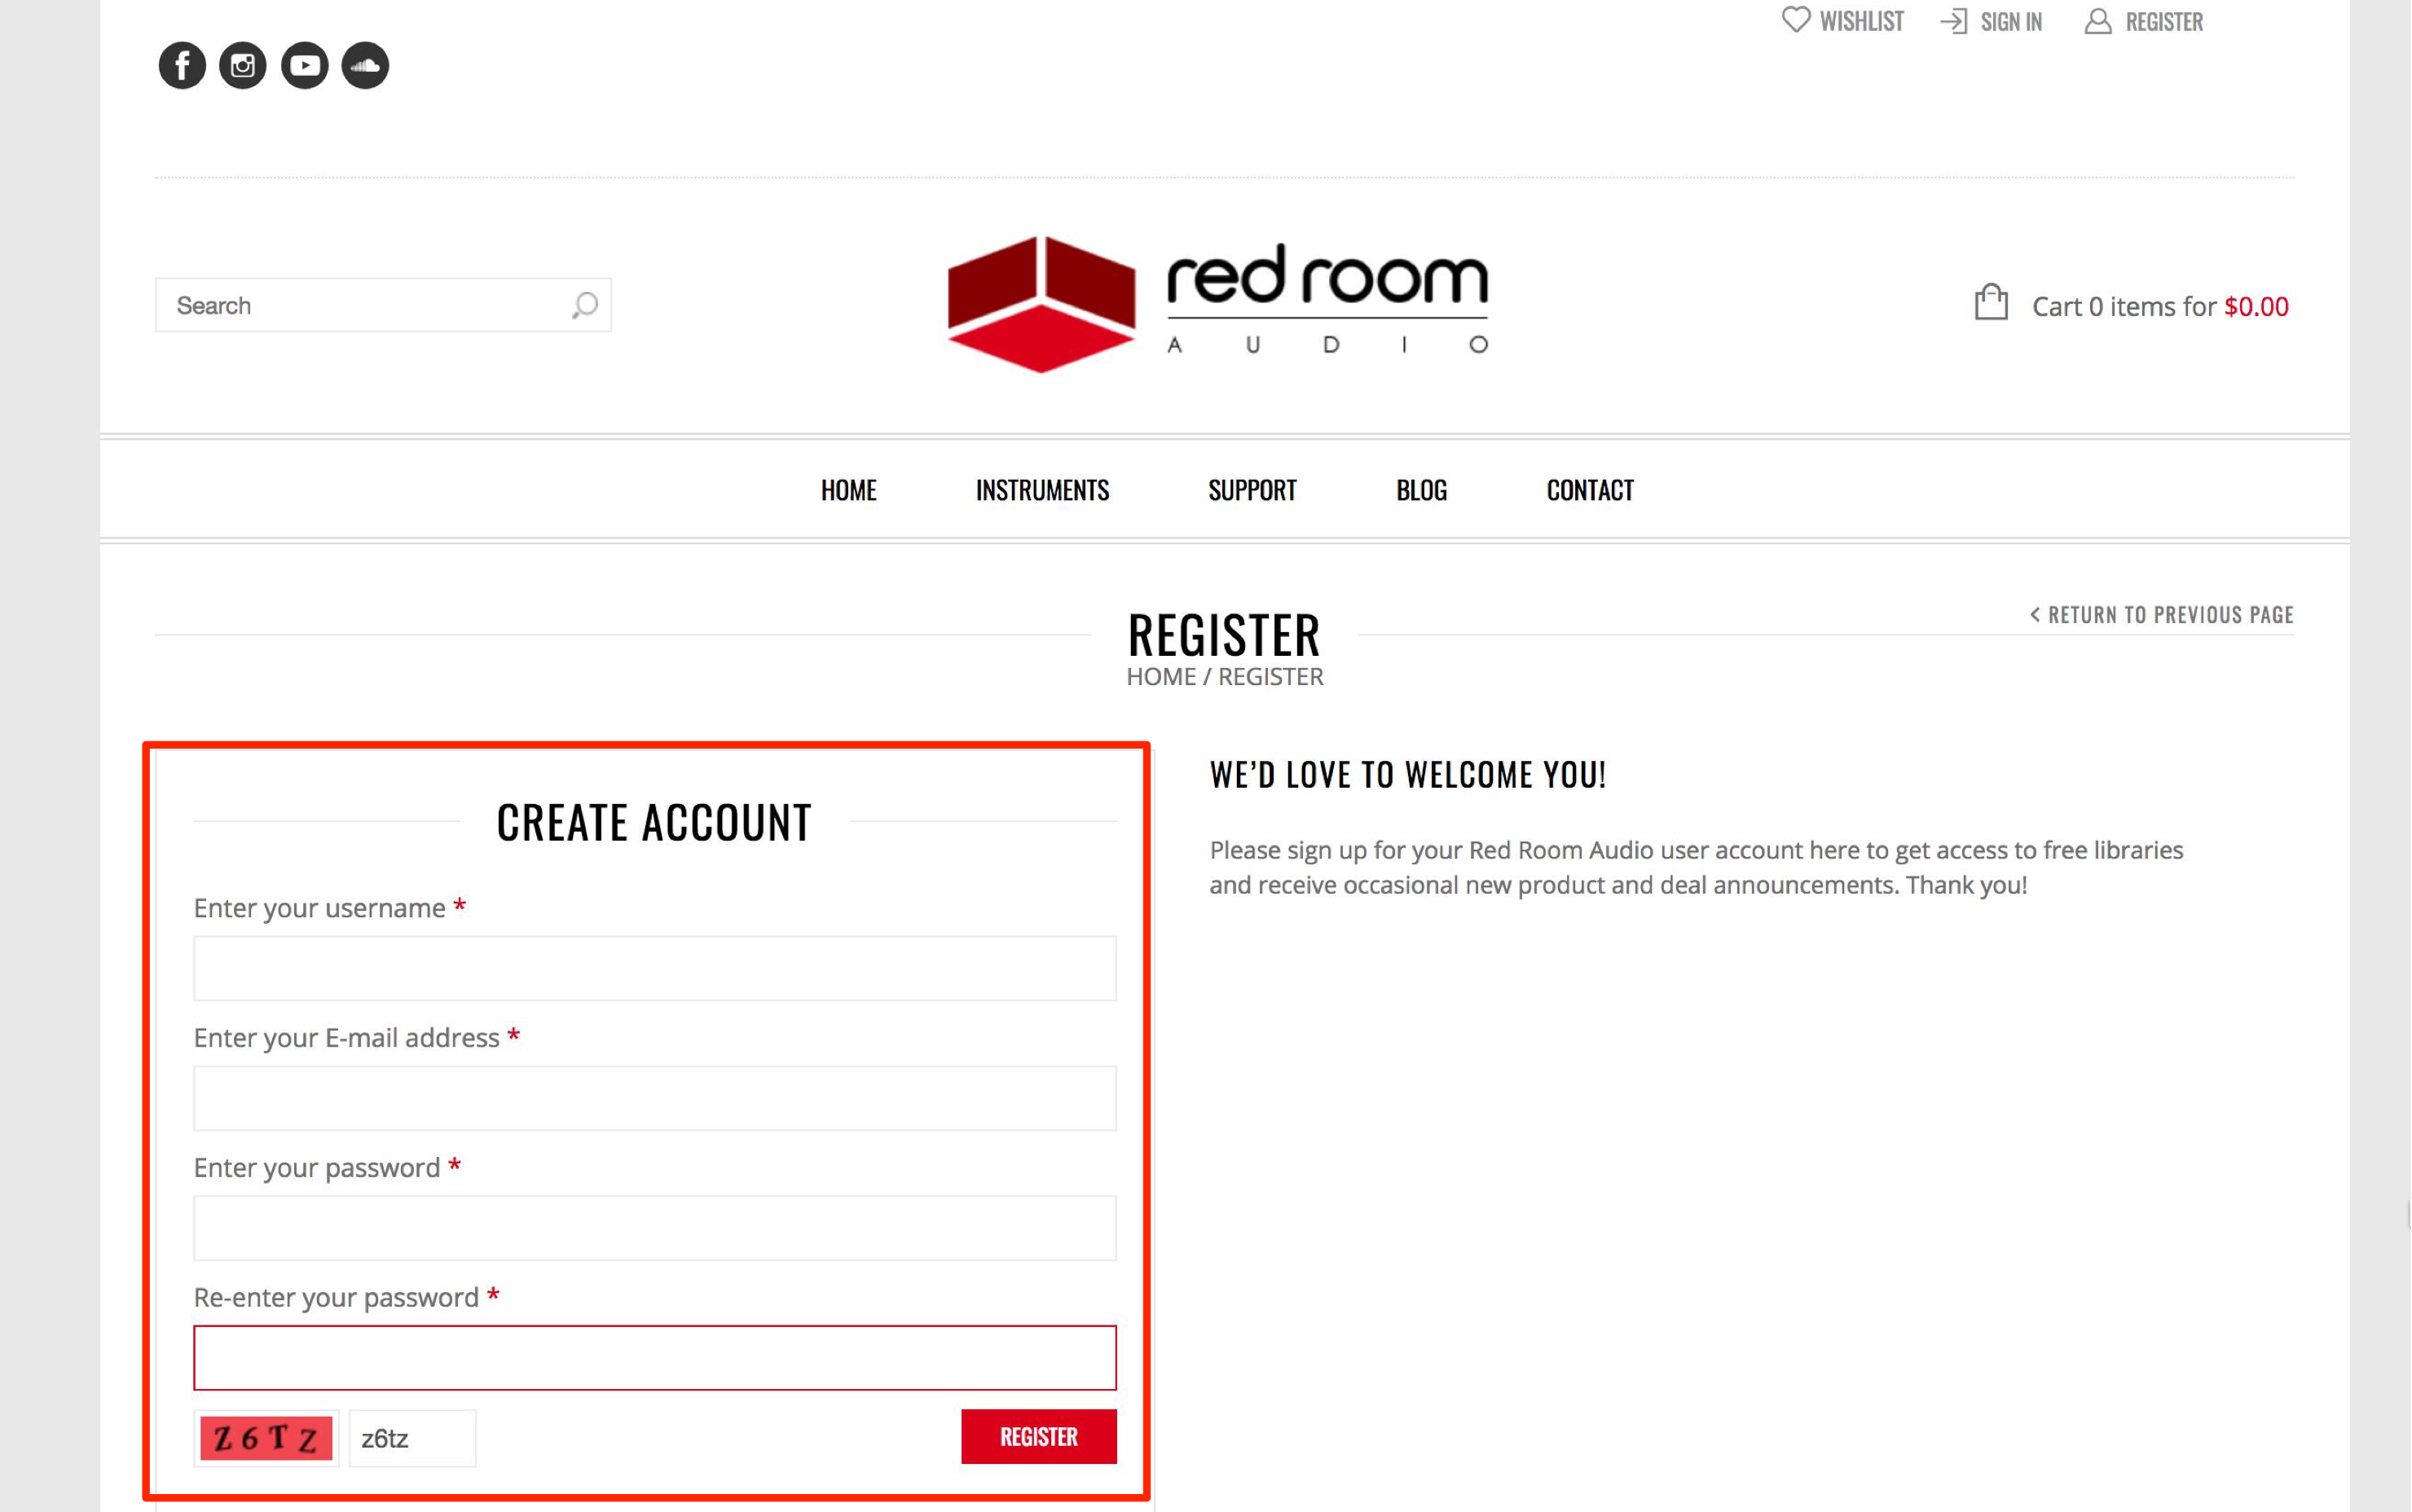 red-room-audio-accont